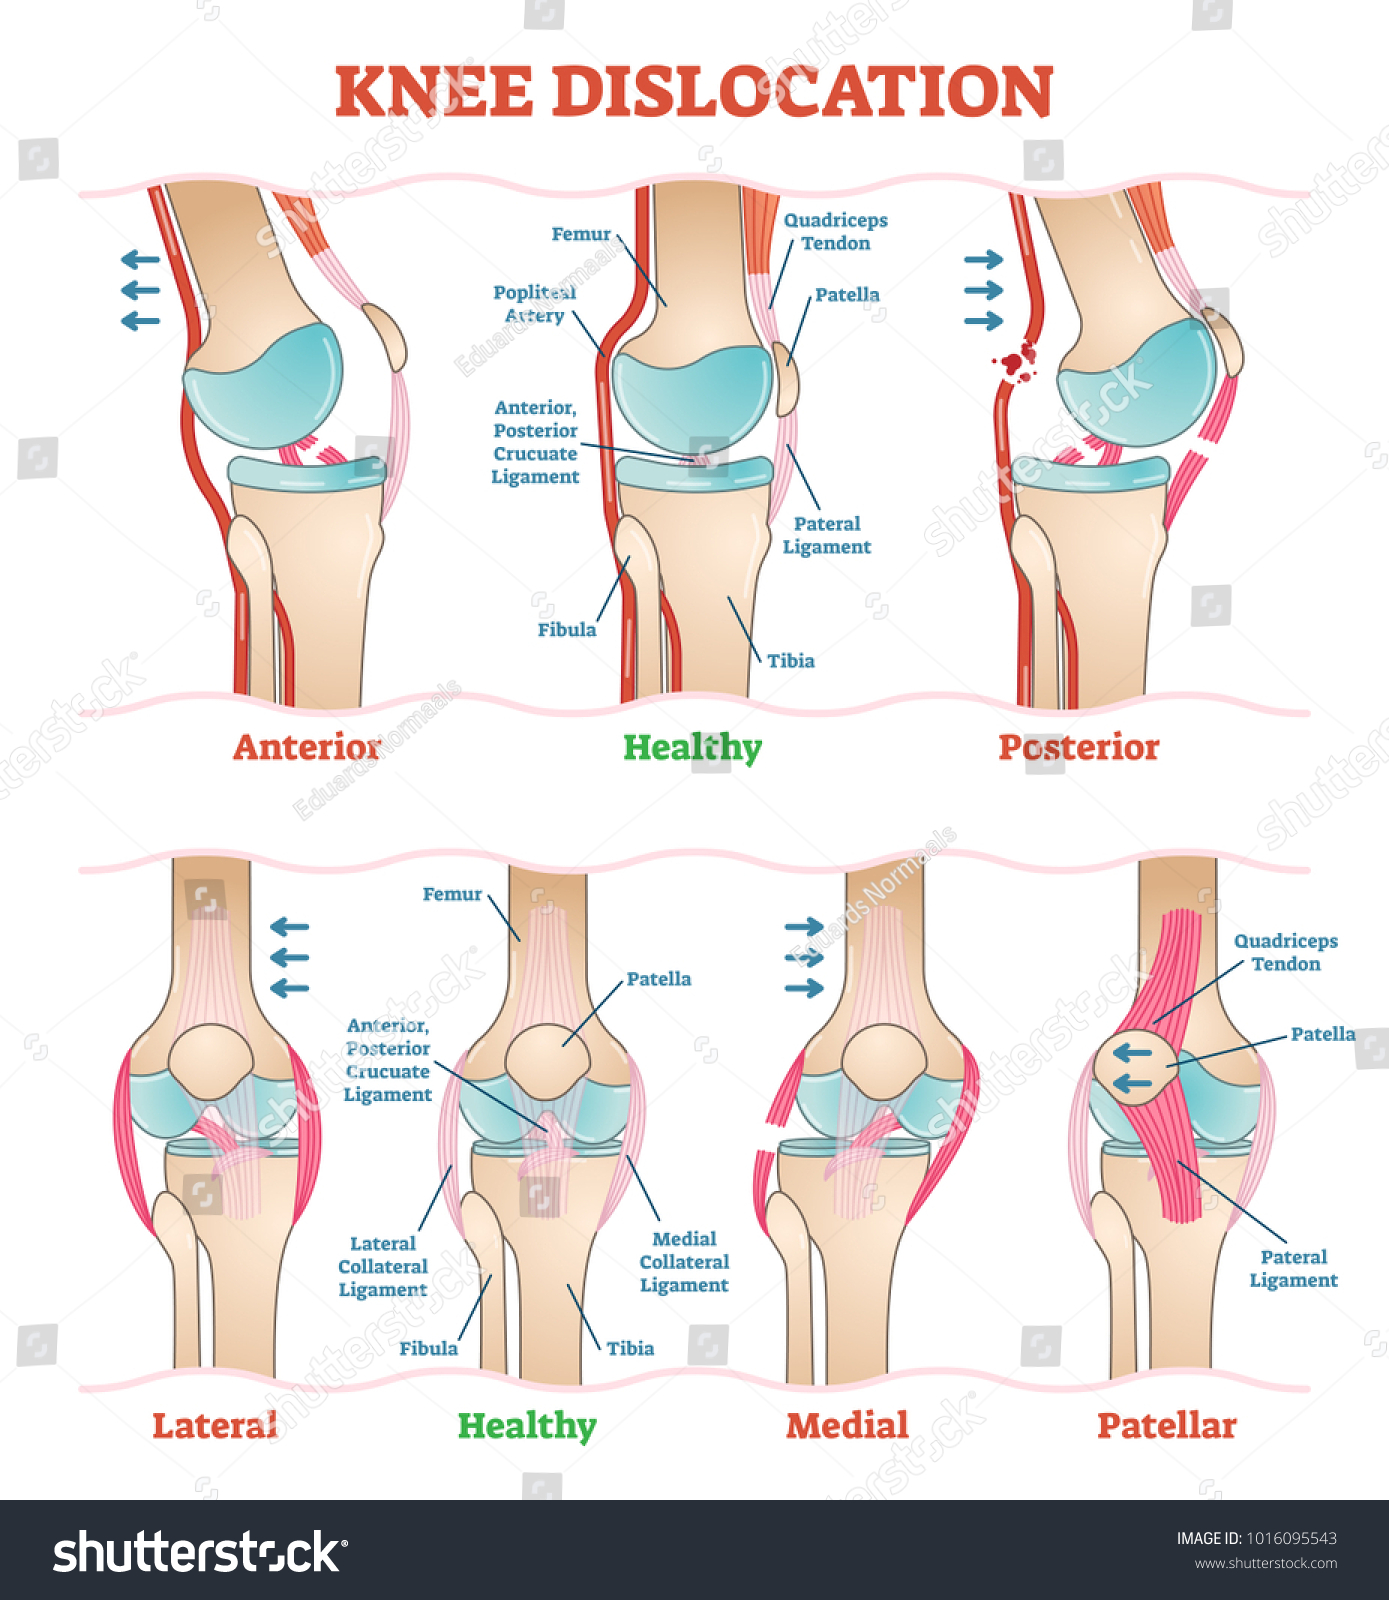 Knee Dislocations Medical Vector Illustration Diagrams Stock ...